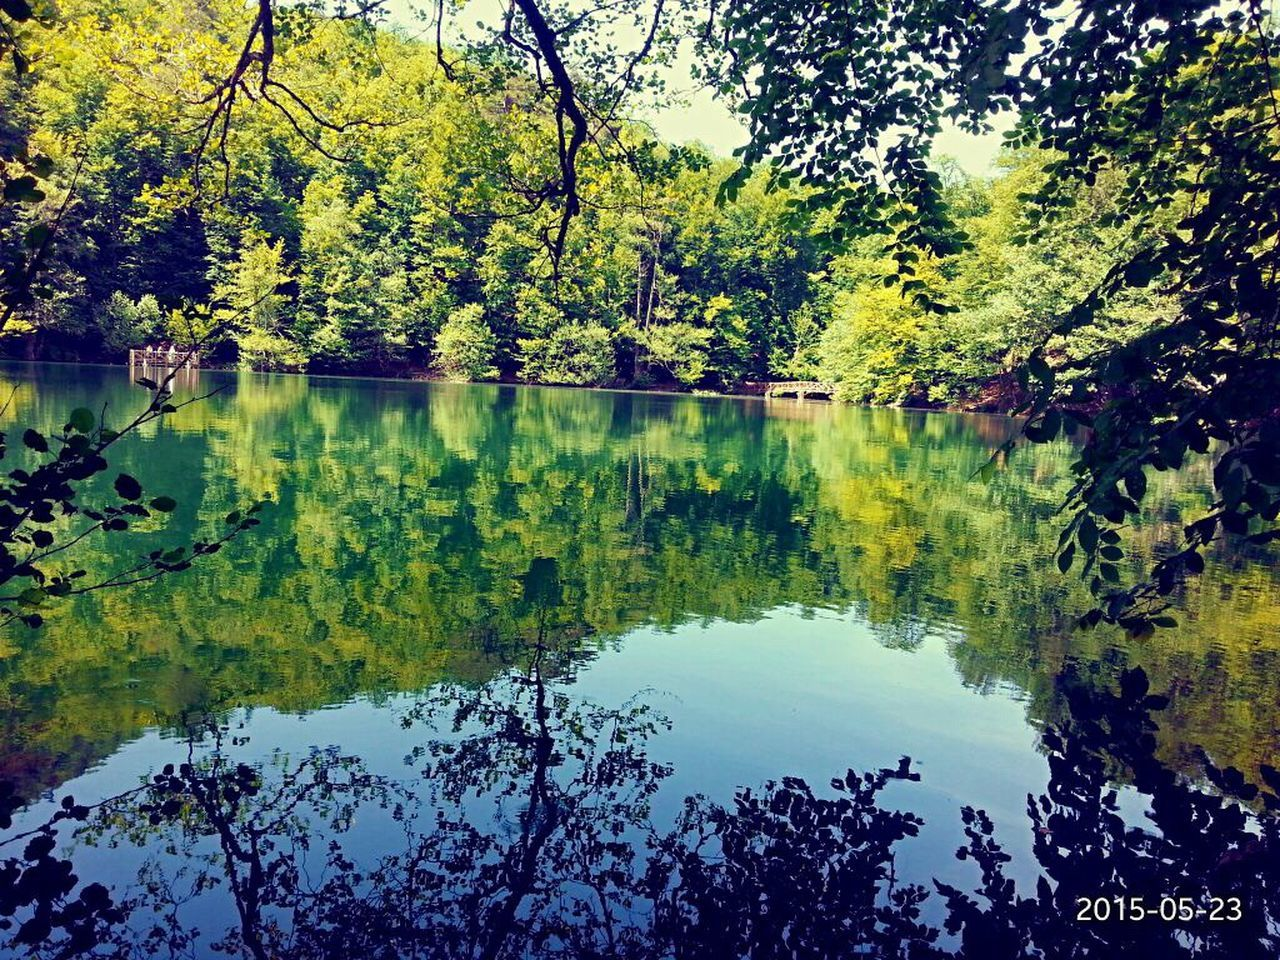 reflection, lake, water, tree, nature, beauty in nature, tranquility, standing water, tranquil scene, growth, no people, scenics, outdoors, day